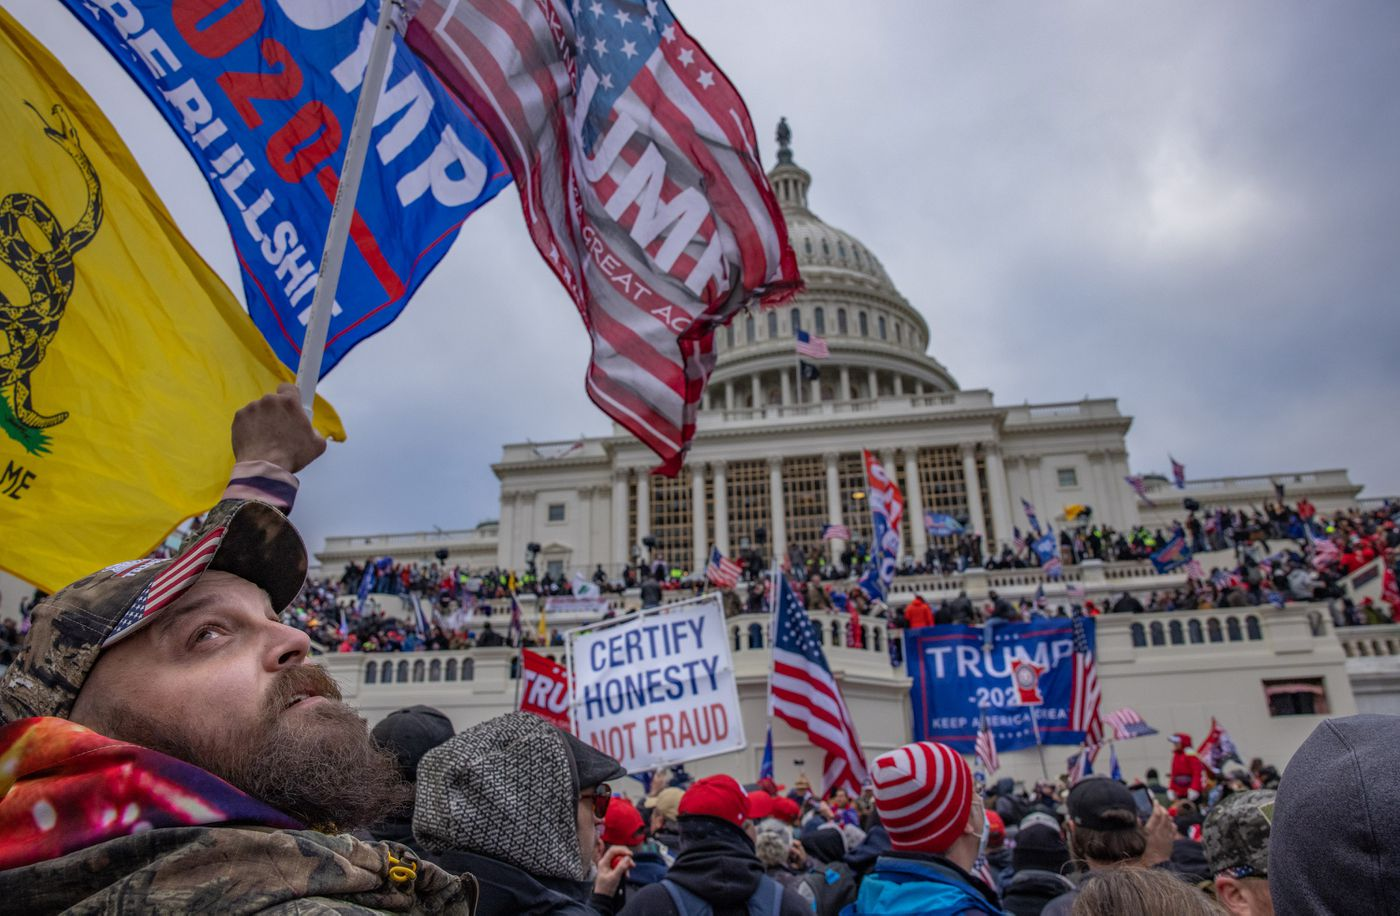 Supporters demonstrate on behalf of President Donald Trump at the U.S. Capitol on Jan. 6, 2021. Photo for The Washington Post by Evelyn Hockstein